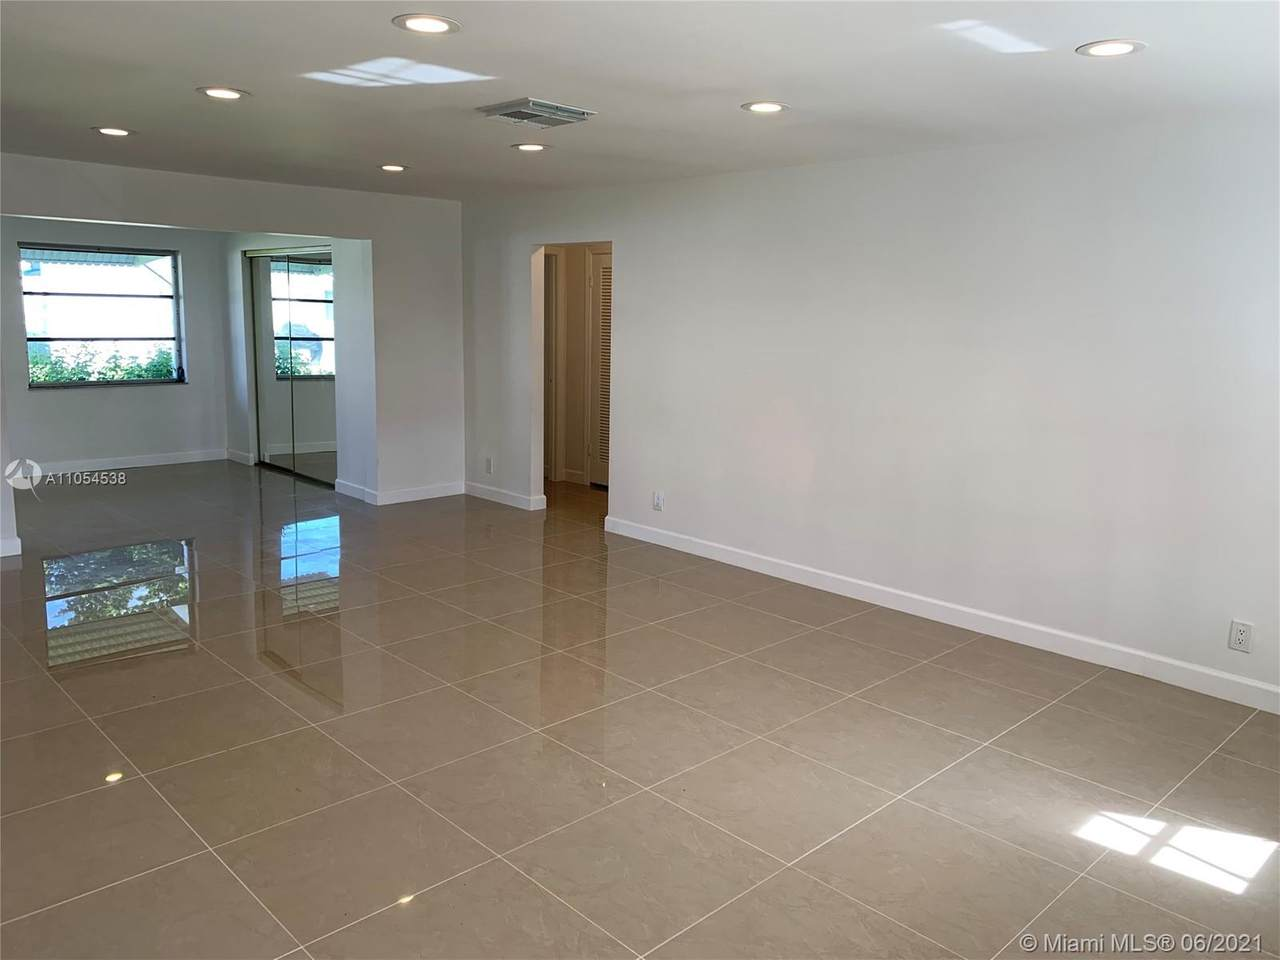 1070 89th Ave - Photo 1